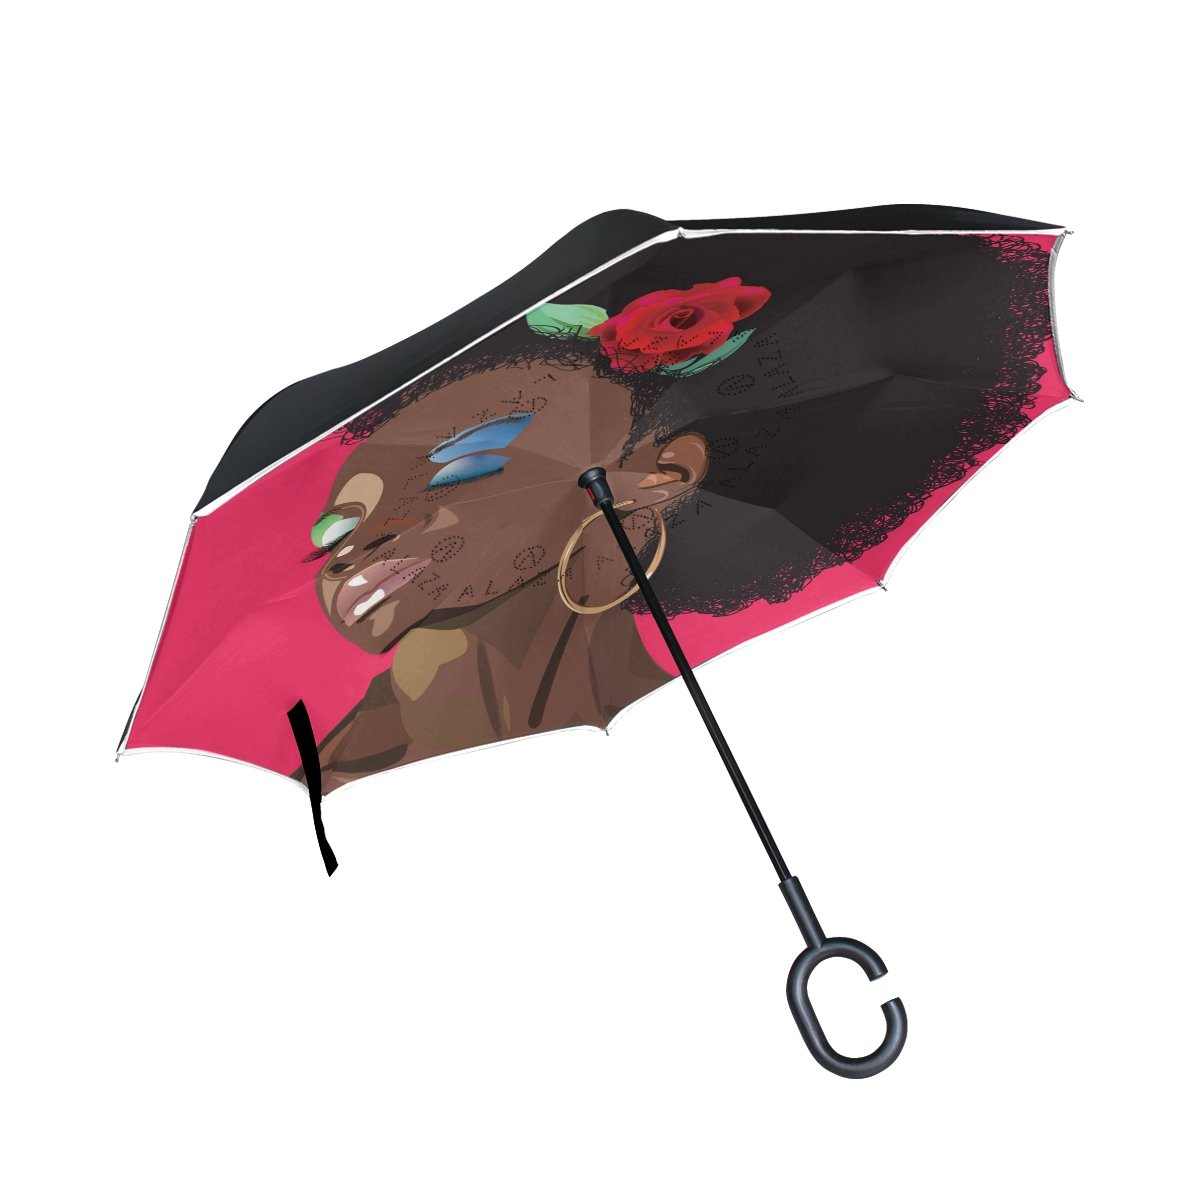 AIDEESS Afro Woman Double Layer Inverted Umbrellas Reverse Folding Umbrella Windproof UV Protection Big Straight Umbrella for Car Rain Outdoor With C-Shaped Handle B076Z9JQYY